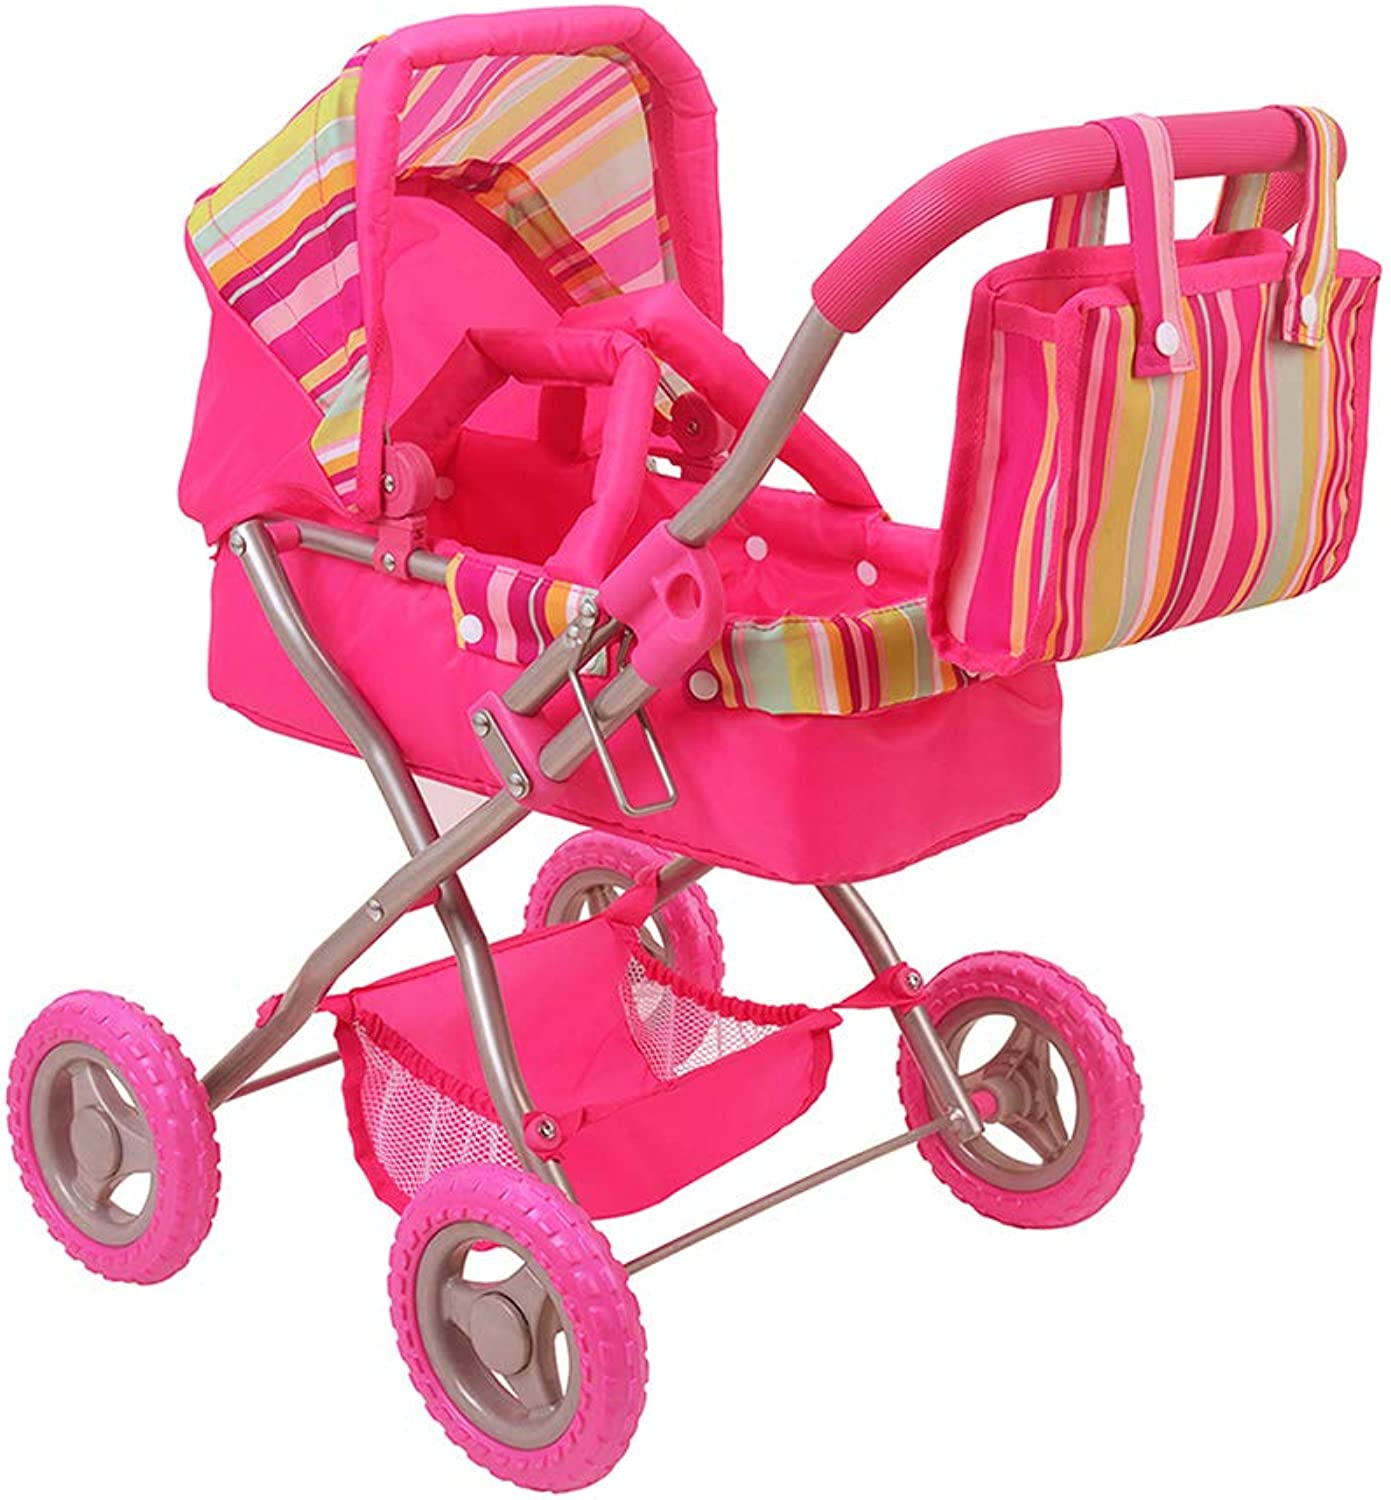 CUBY Doll Jogging Stroller, My First Baby Toy Stroller, Doll Deluxe Pram Lightweight with Removable Carrycot and Diaper Bag, Birthday Gift for Kids